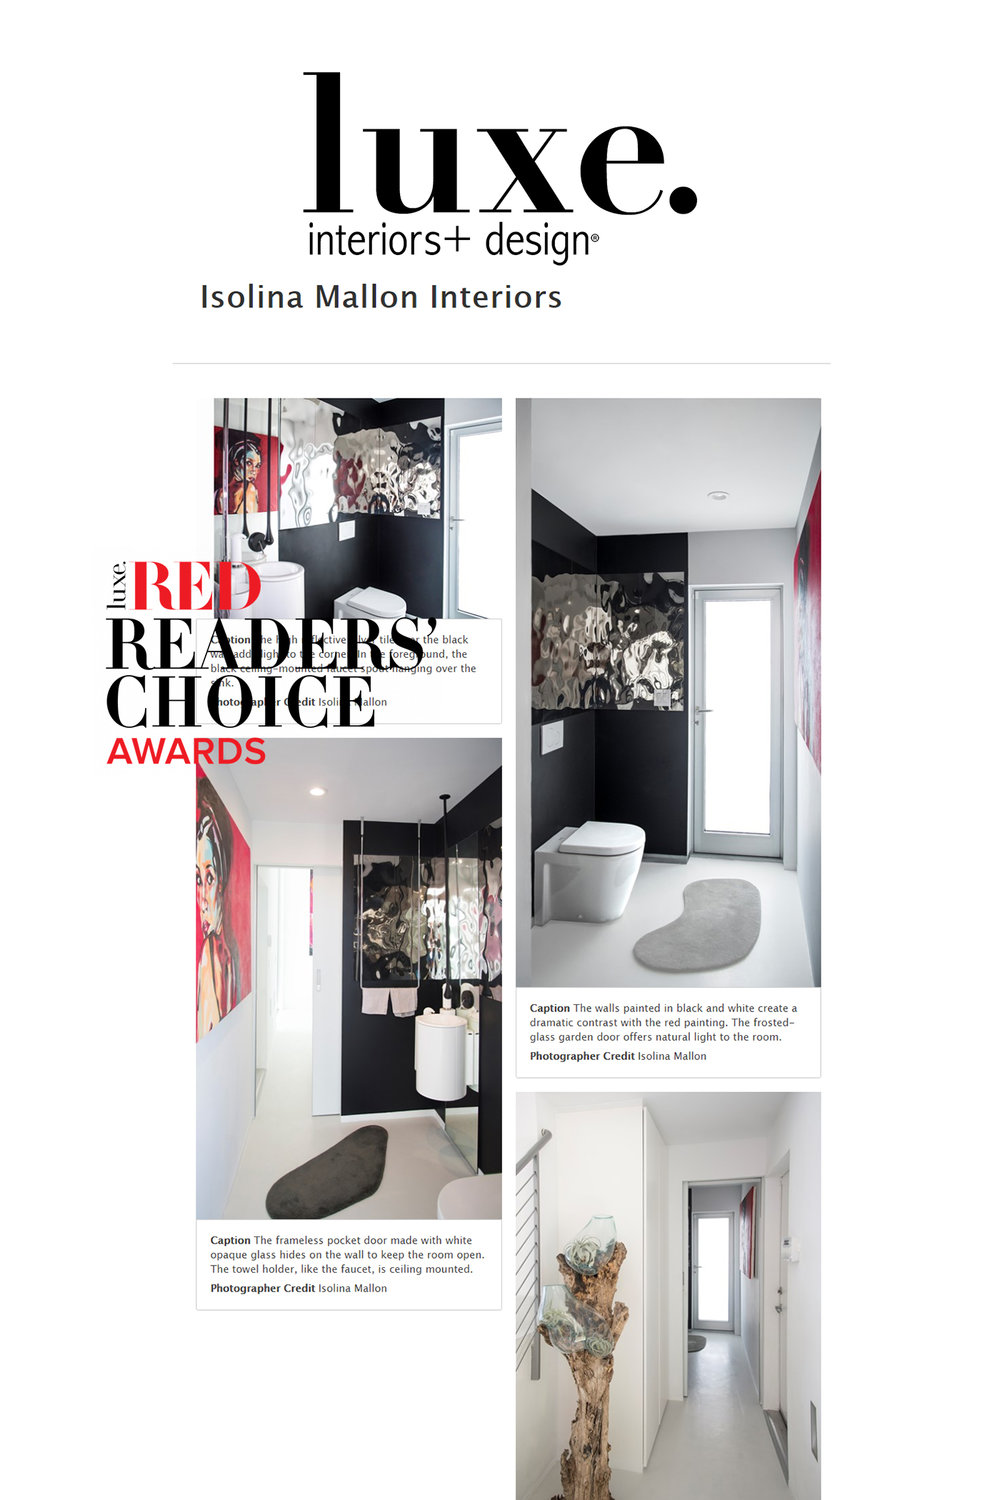 luxe interior + design red awards 2019   our submission for CONTEMPORARY bathroom design for luxe red readers choice awards 2019. this impressive powder room is part of our integral interior design and architecture detailing for a single family house made by architects herring & worley.   read more.